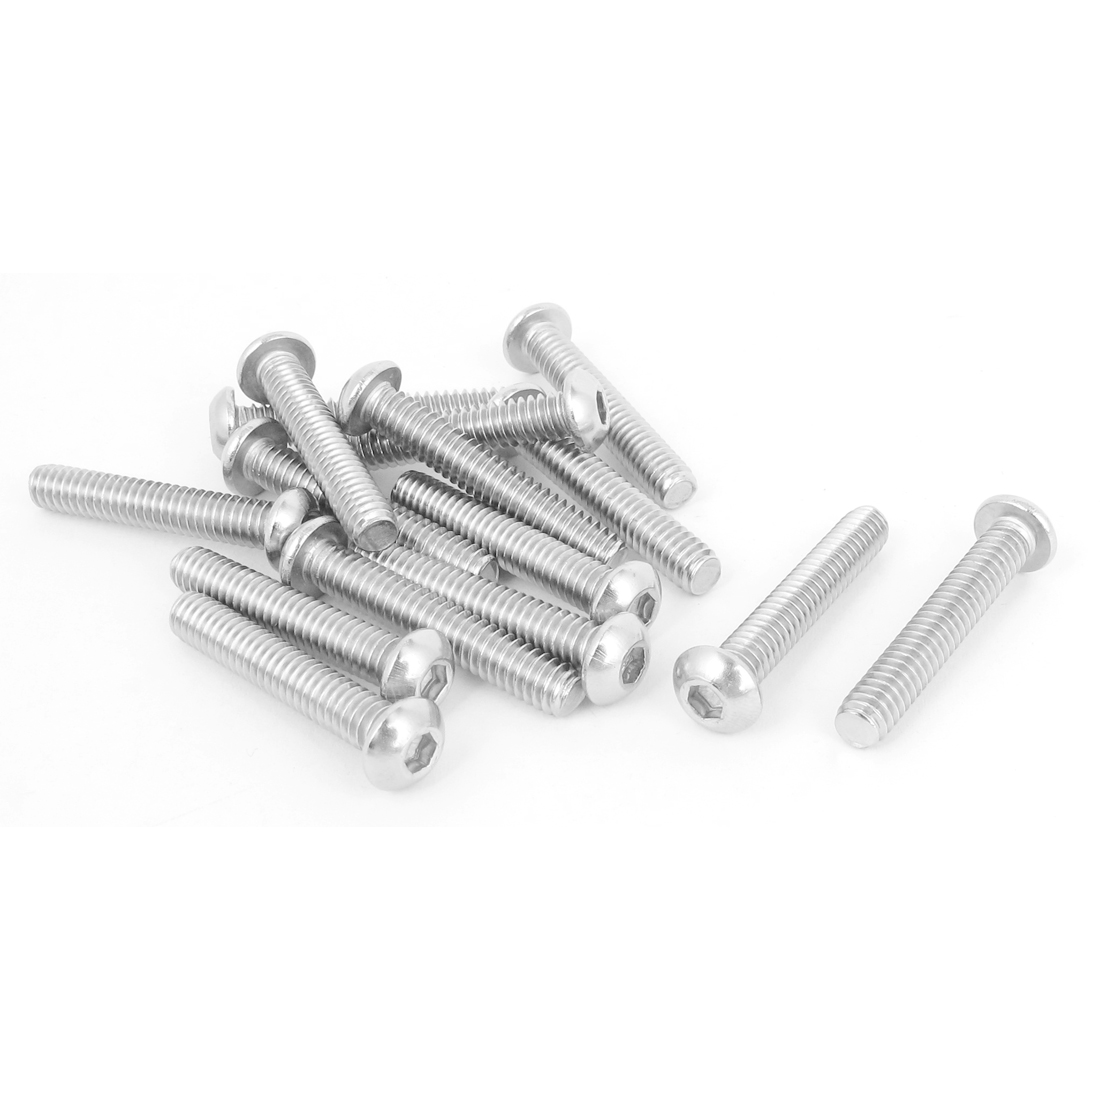 "15pcs 1/4""-20x1-1/2"" Stainless Steel Hex Socket Button Head Bolts Screws"